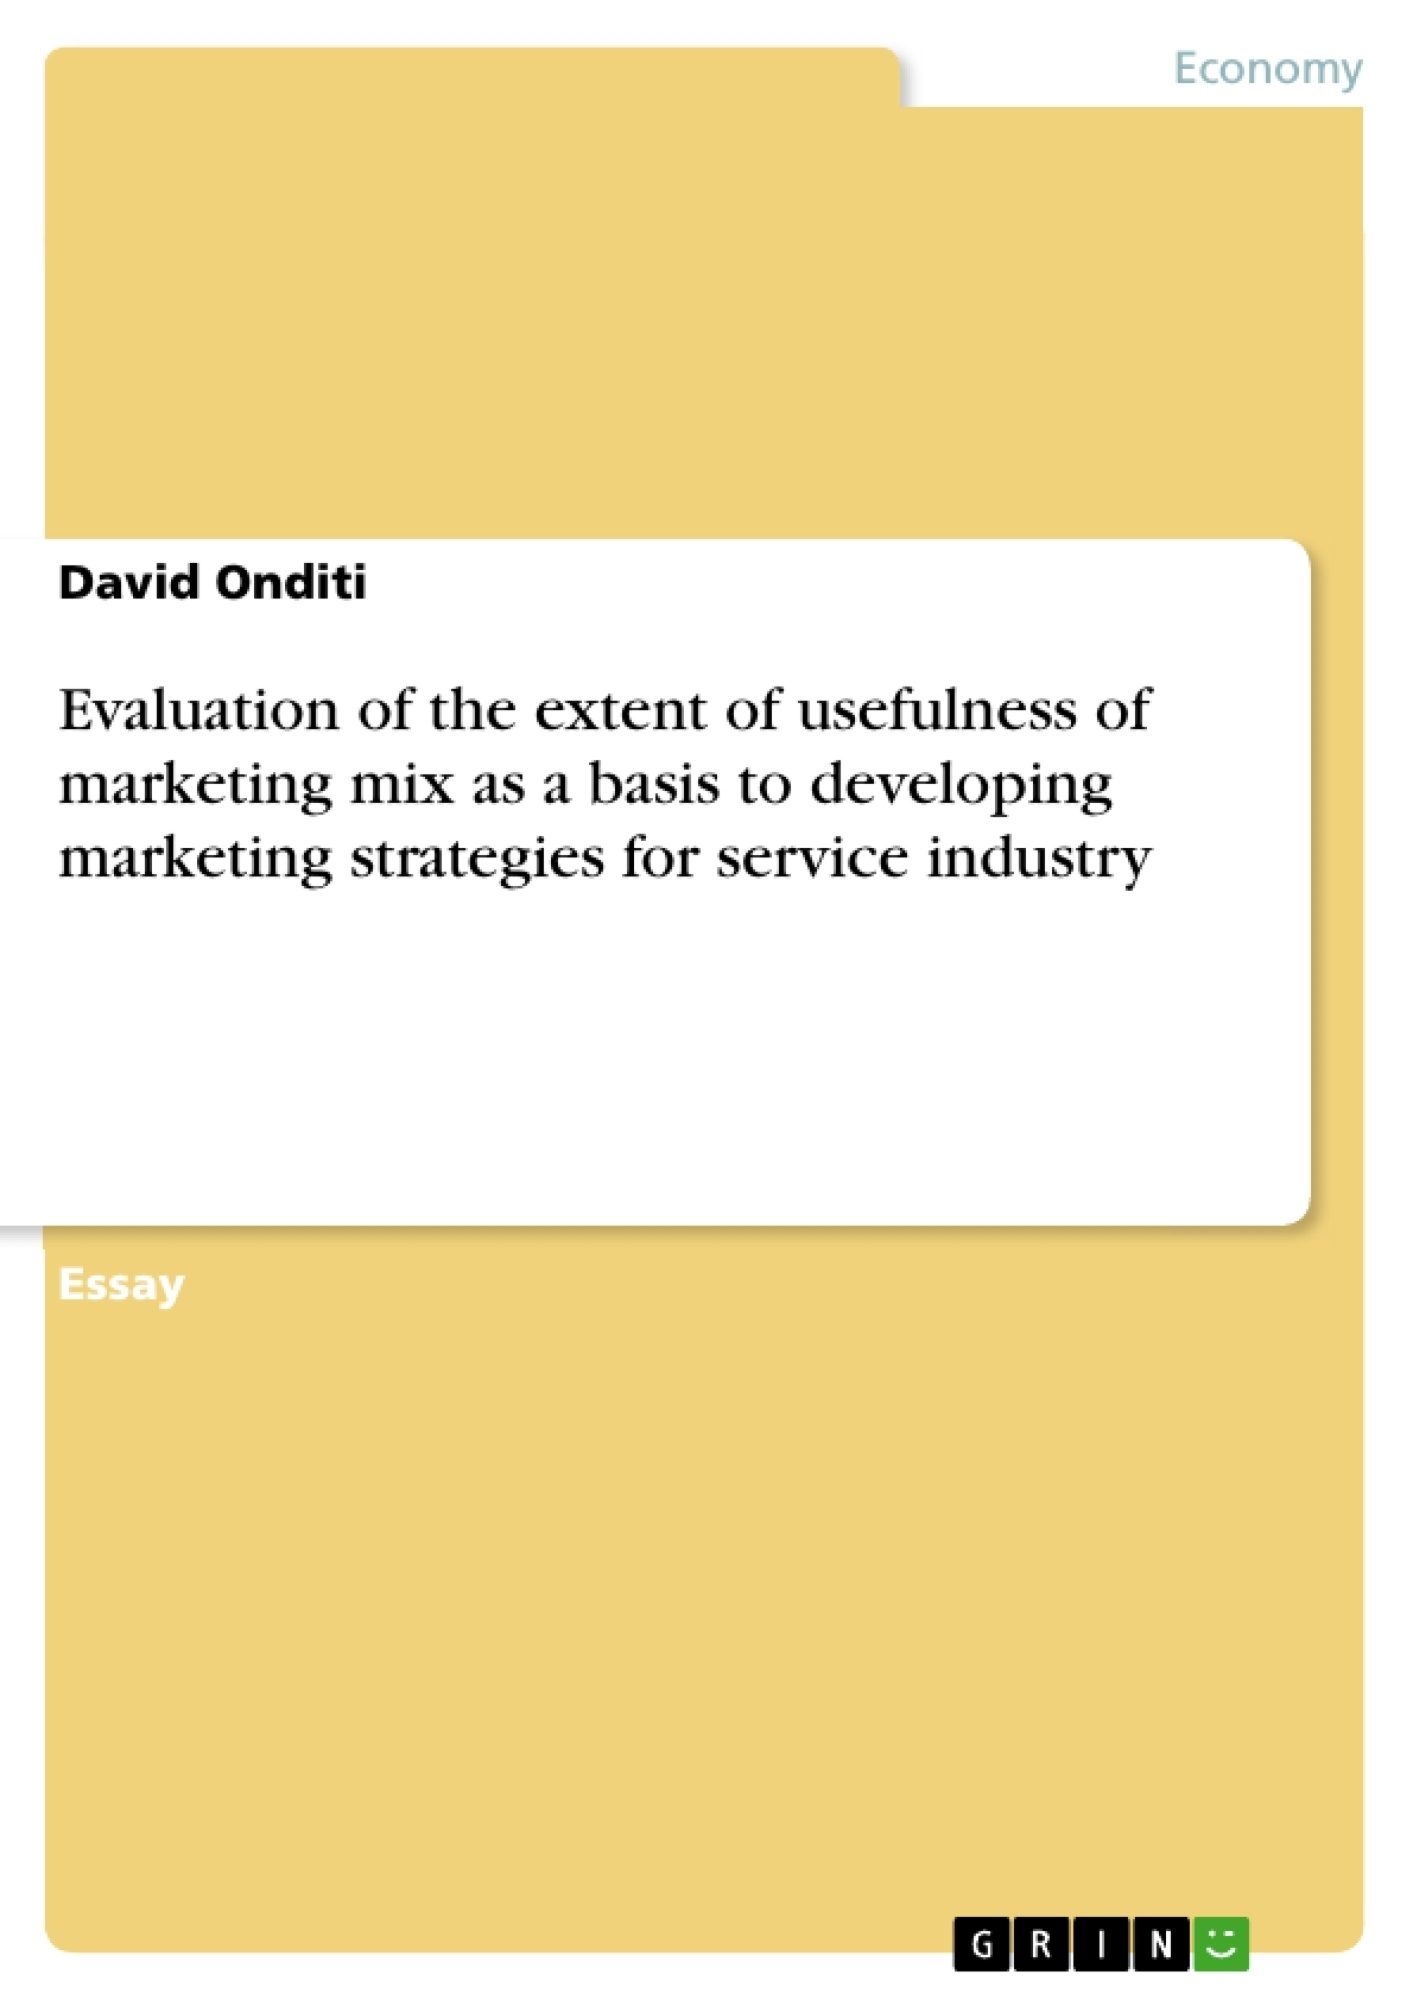 Title: Evaluation of the extent of usefulness of marketing mix as a basis to developing marketing strategies for service industry